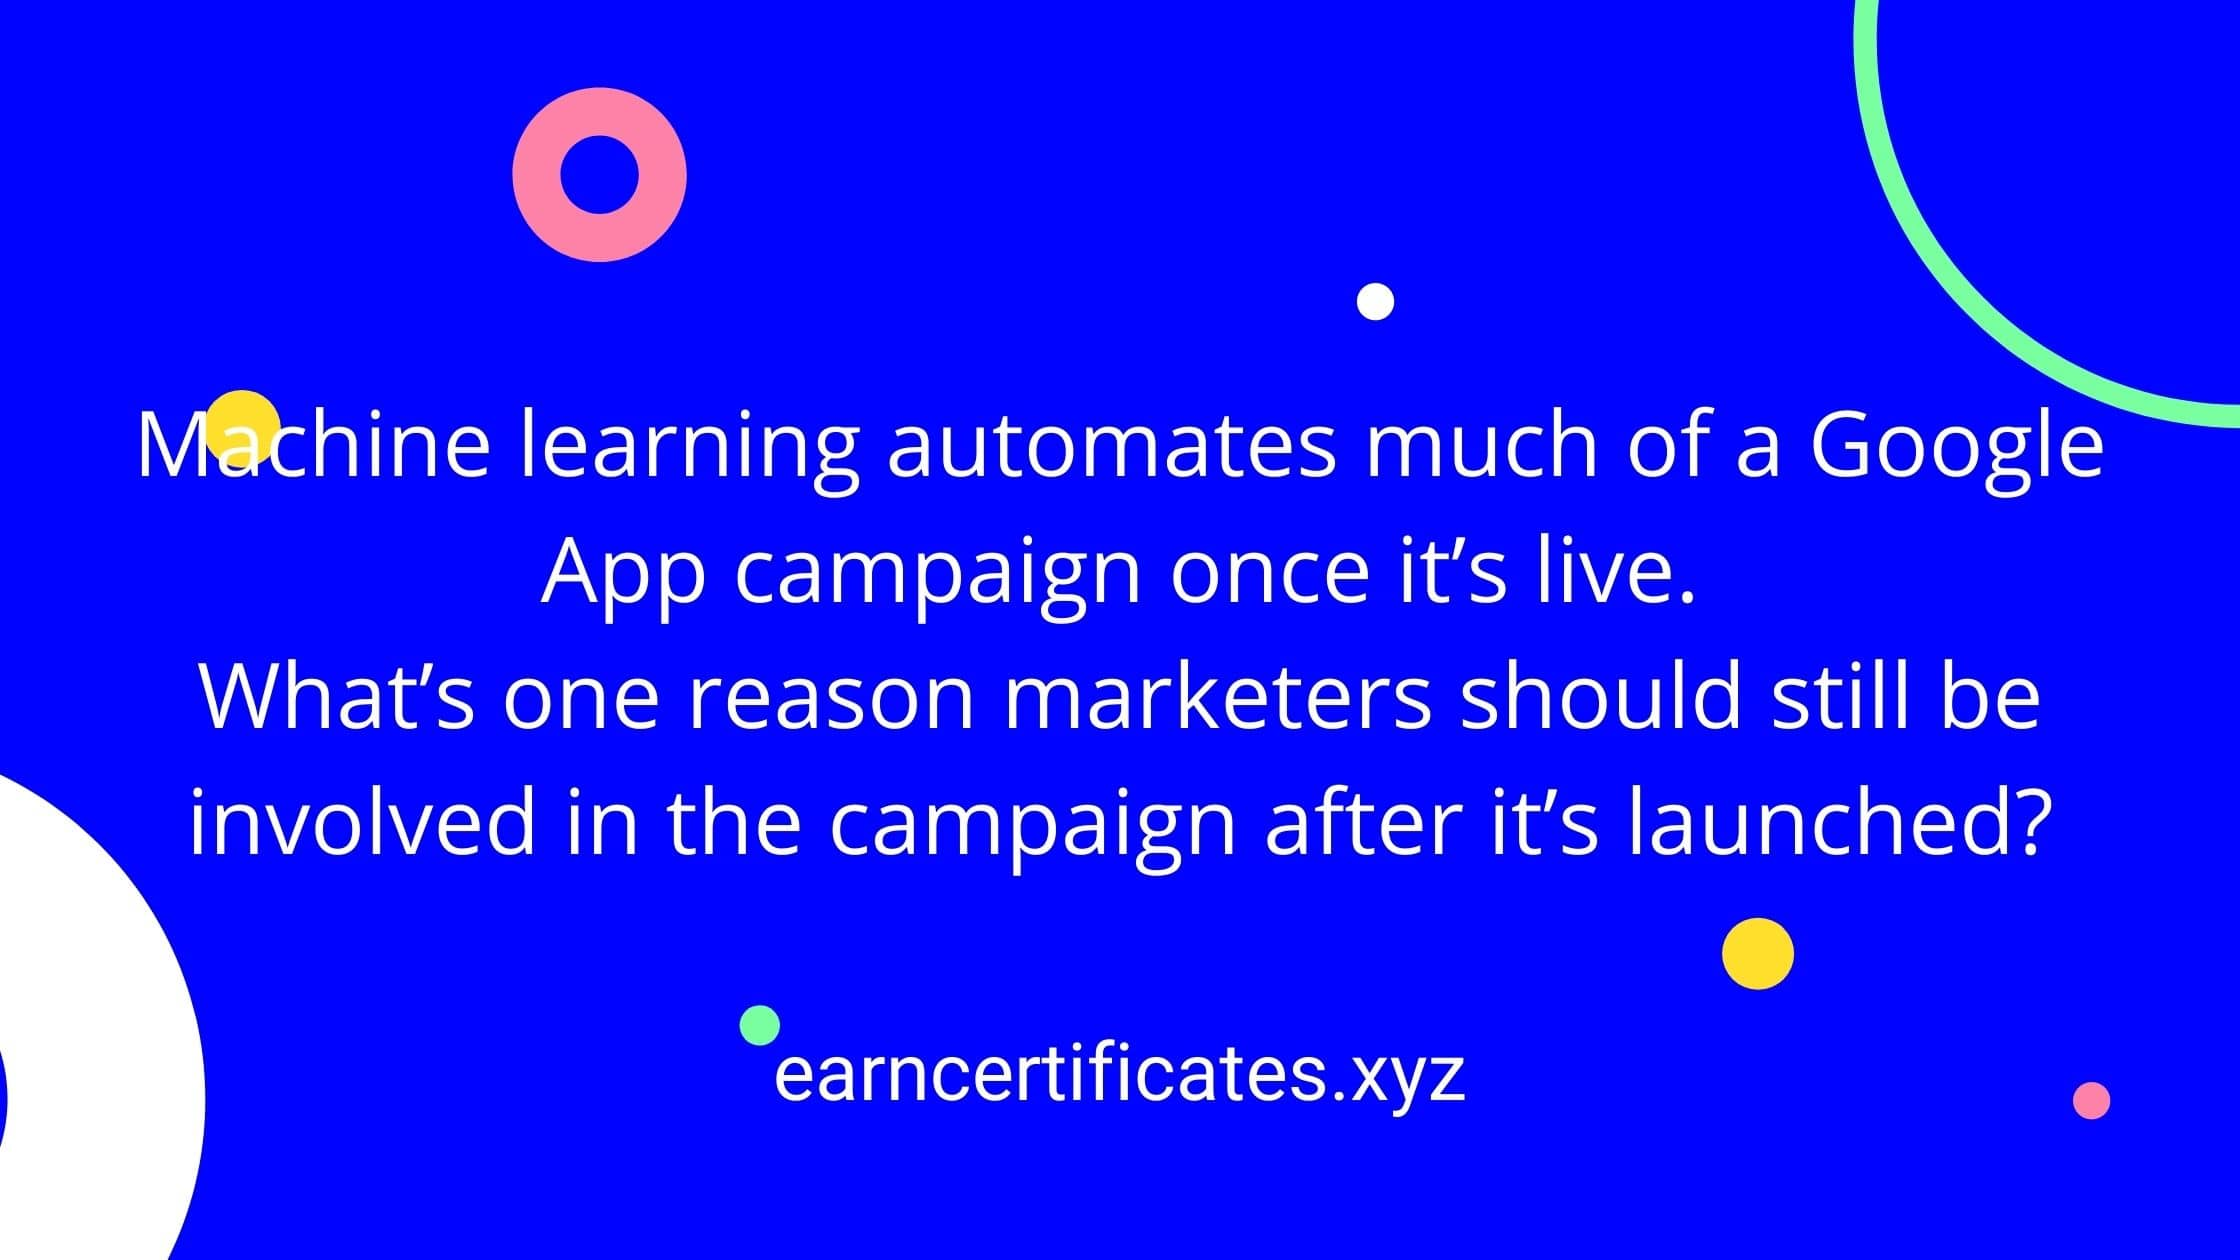 Machine learning automates much of a Google App campaign once it's live. What's one reason marketers should still be involved in the campaign after it's launched?